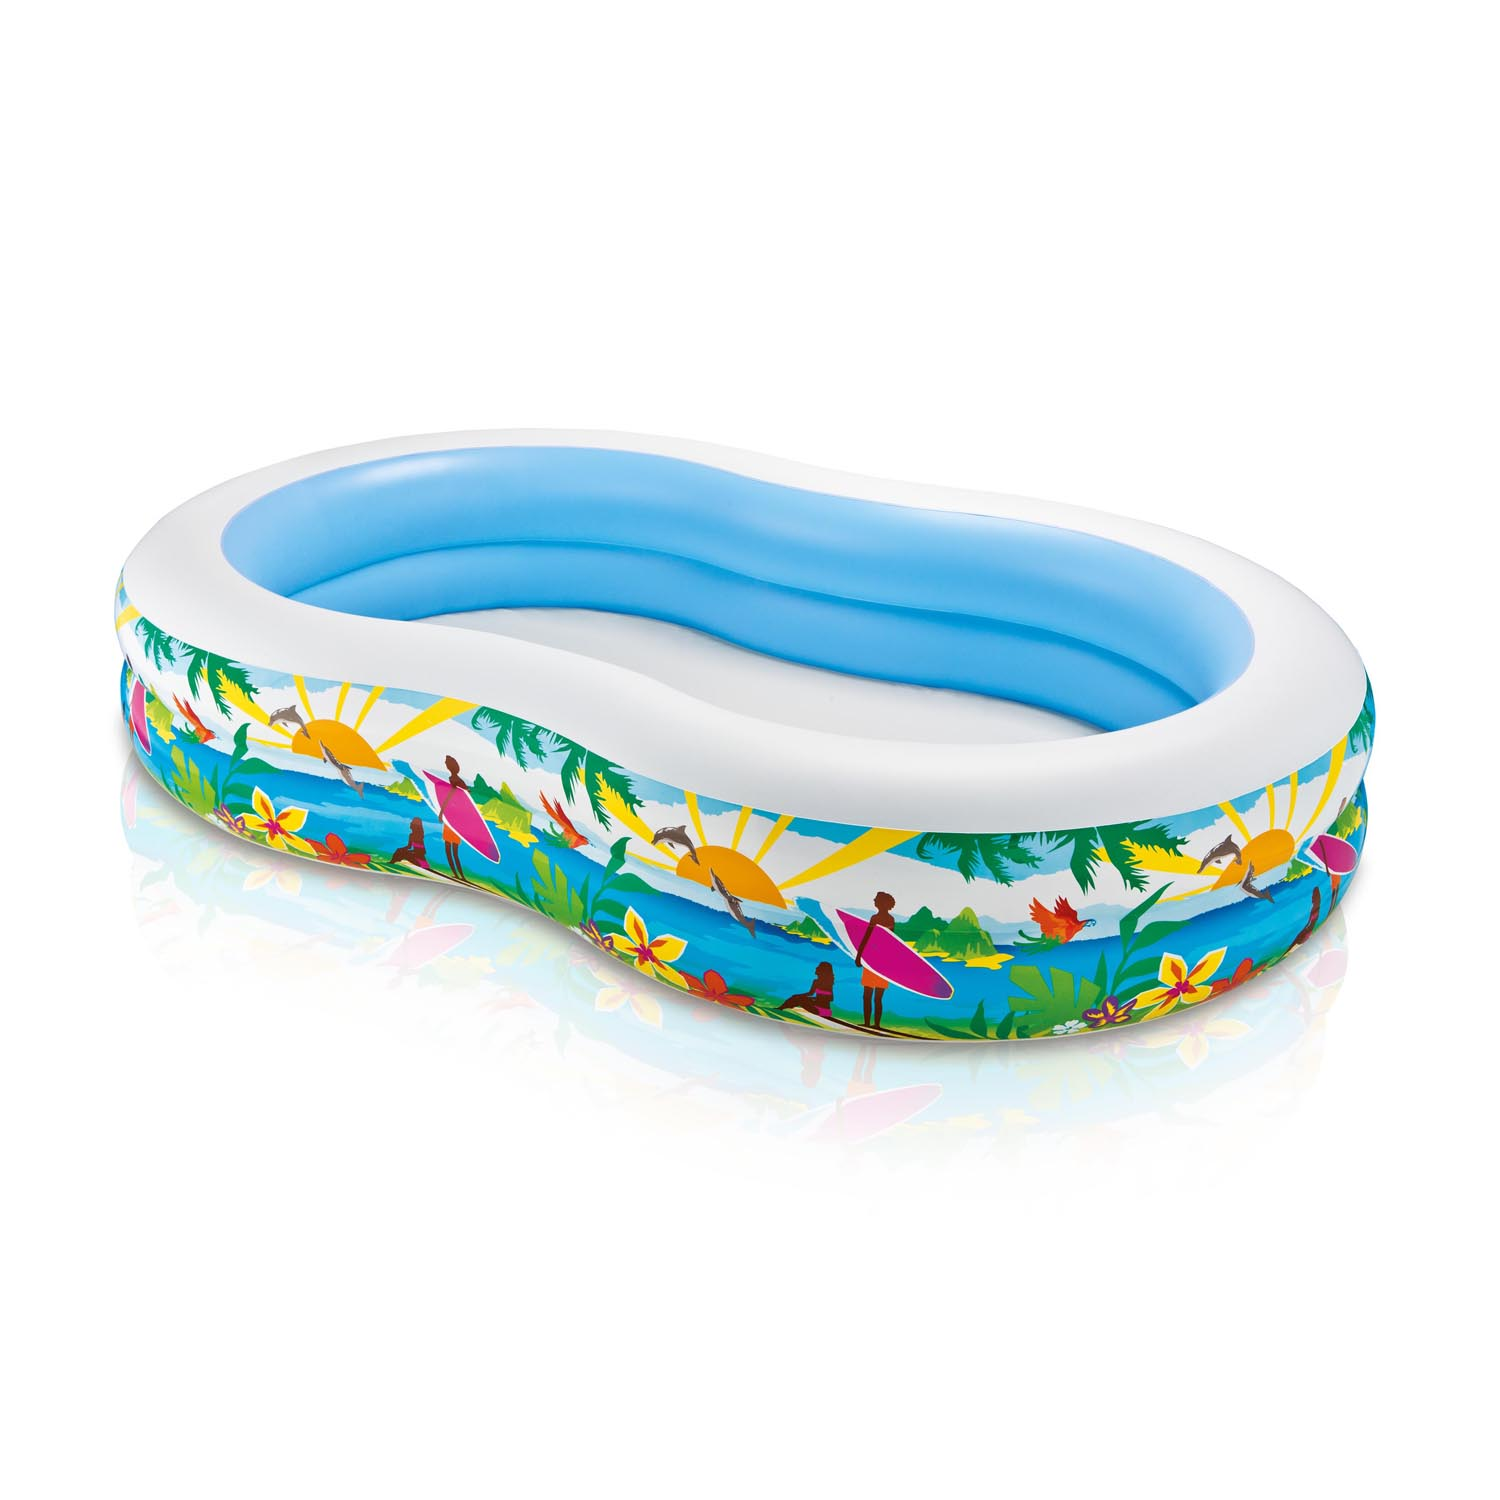 Intex 8.6' x 5.25' x 1.2' Paradise Lagoon Inflatable Kiddie Swimming Pool